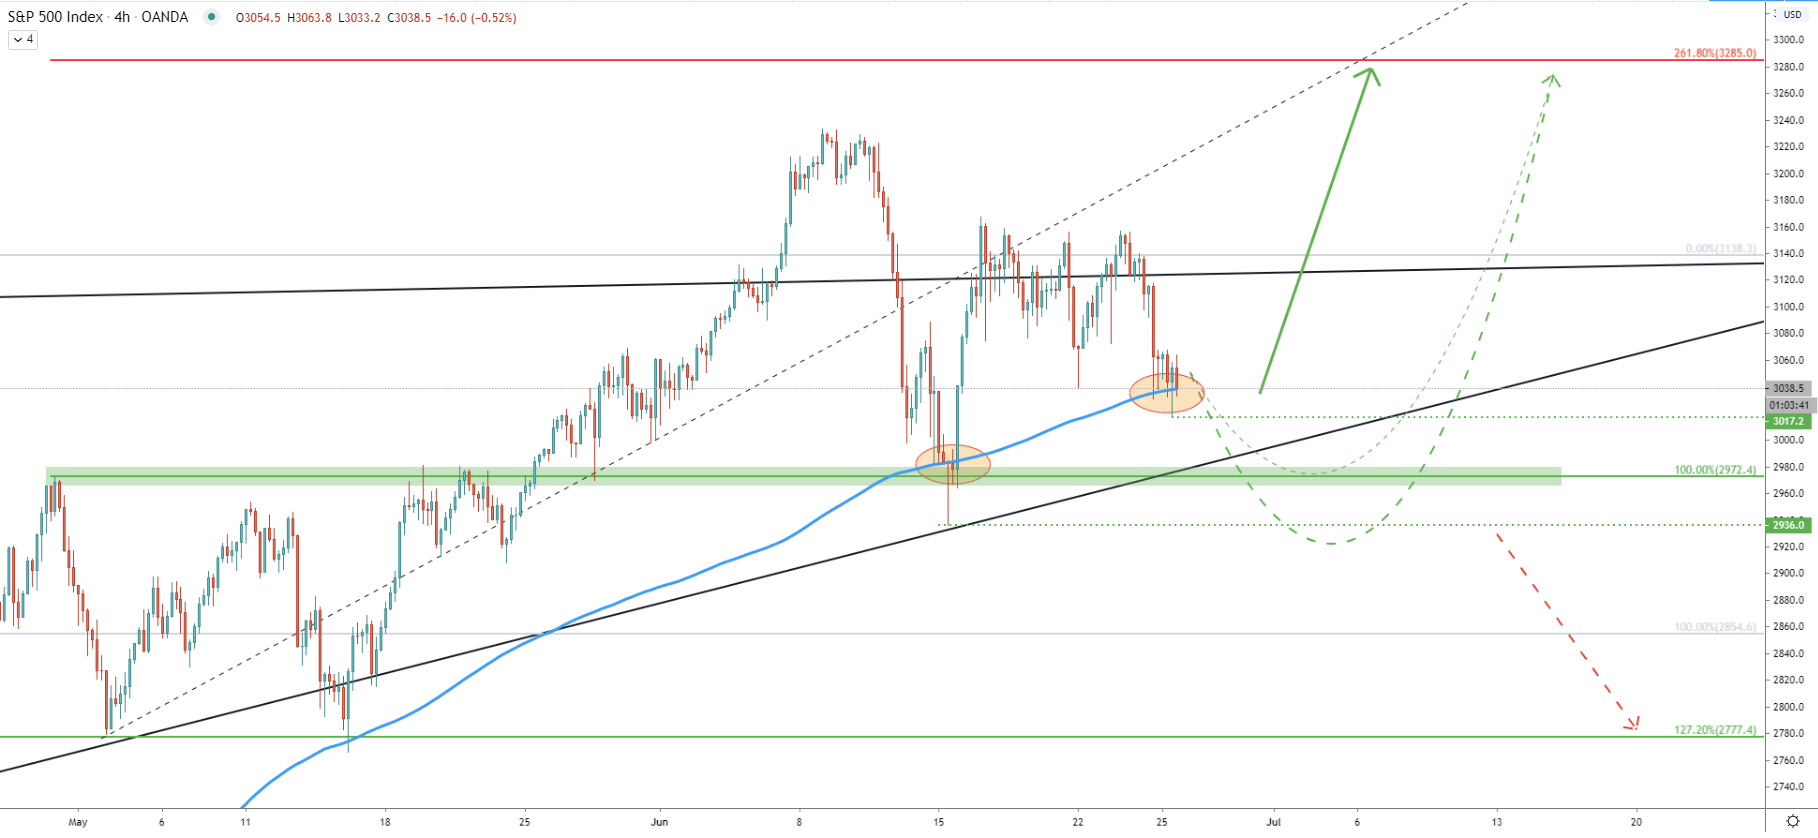 S&P500 4-Hour Technical Analysis 25 June 2020